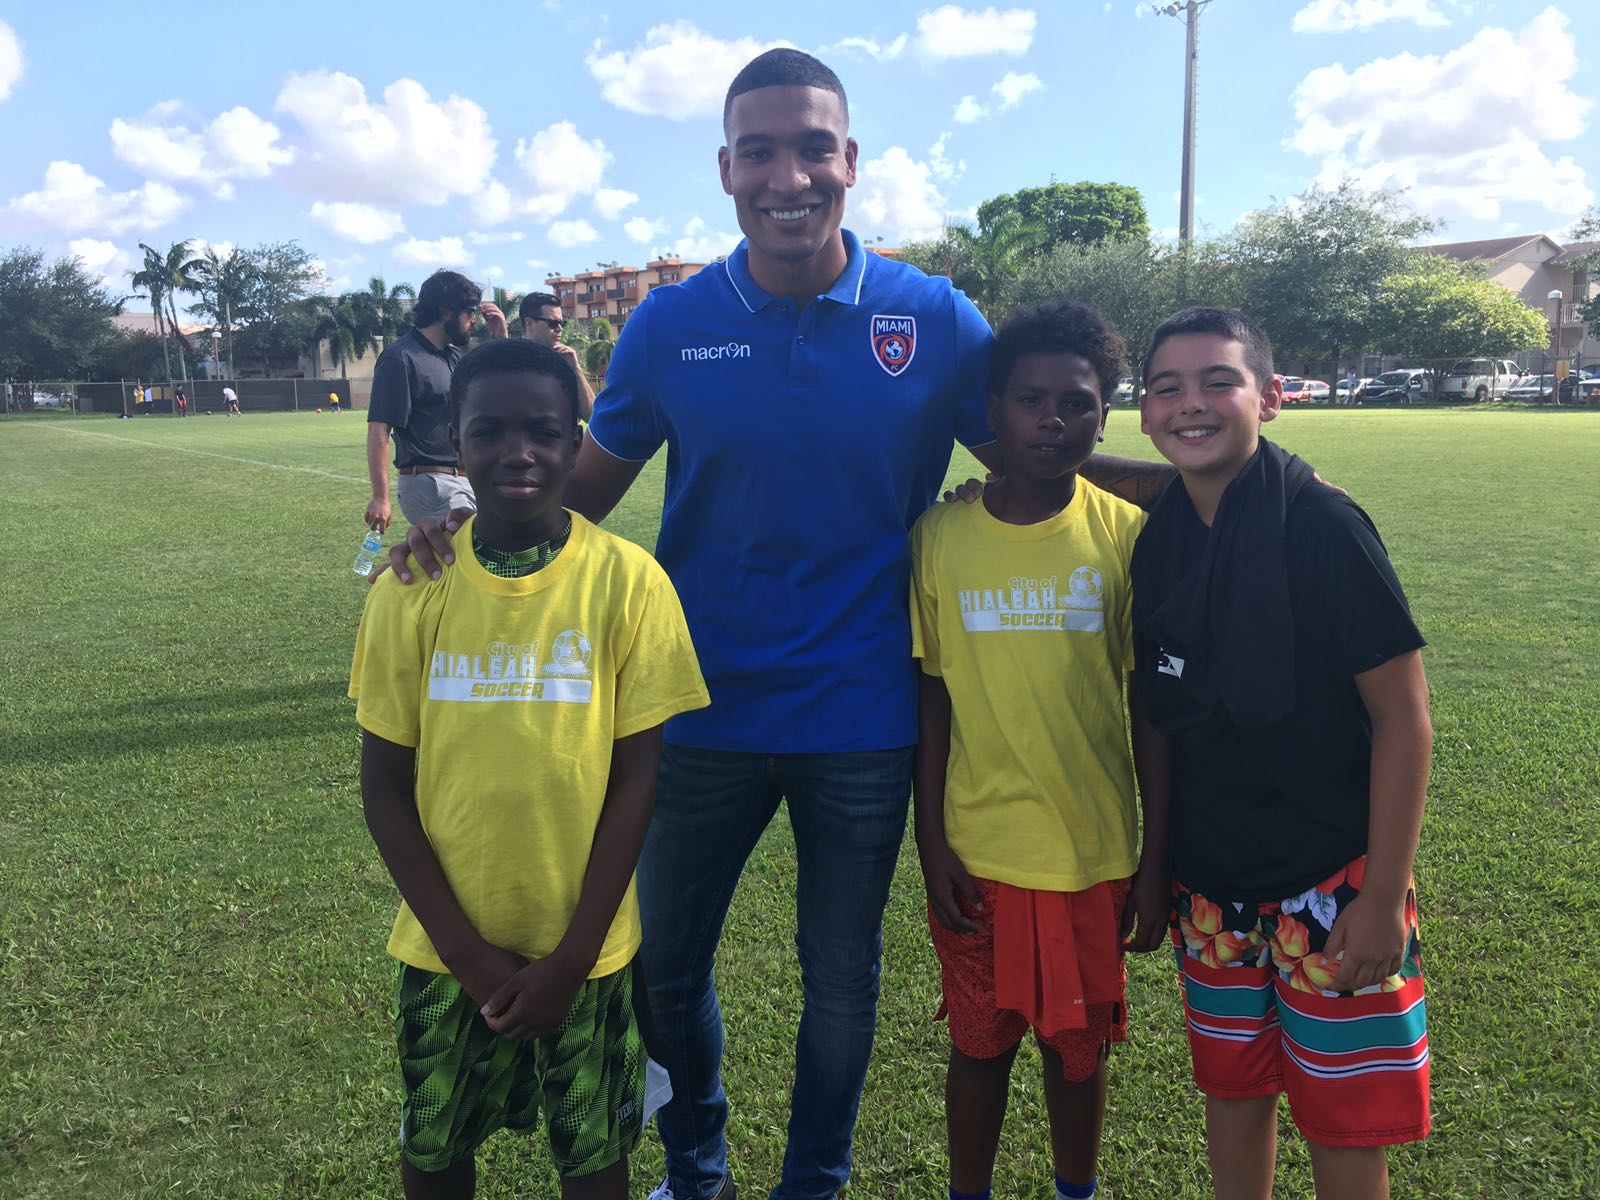 Miami FC player Aaron Dennis pleased to celebrate Kick It with local children